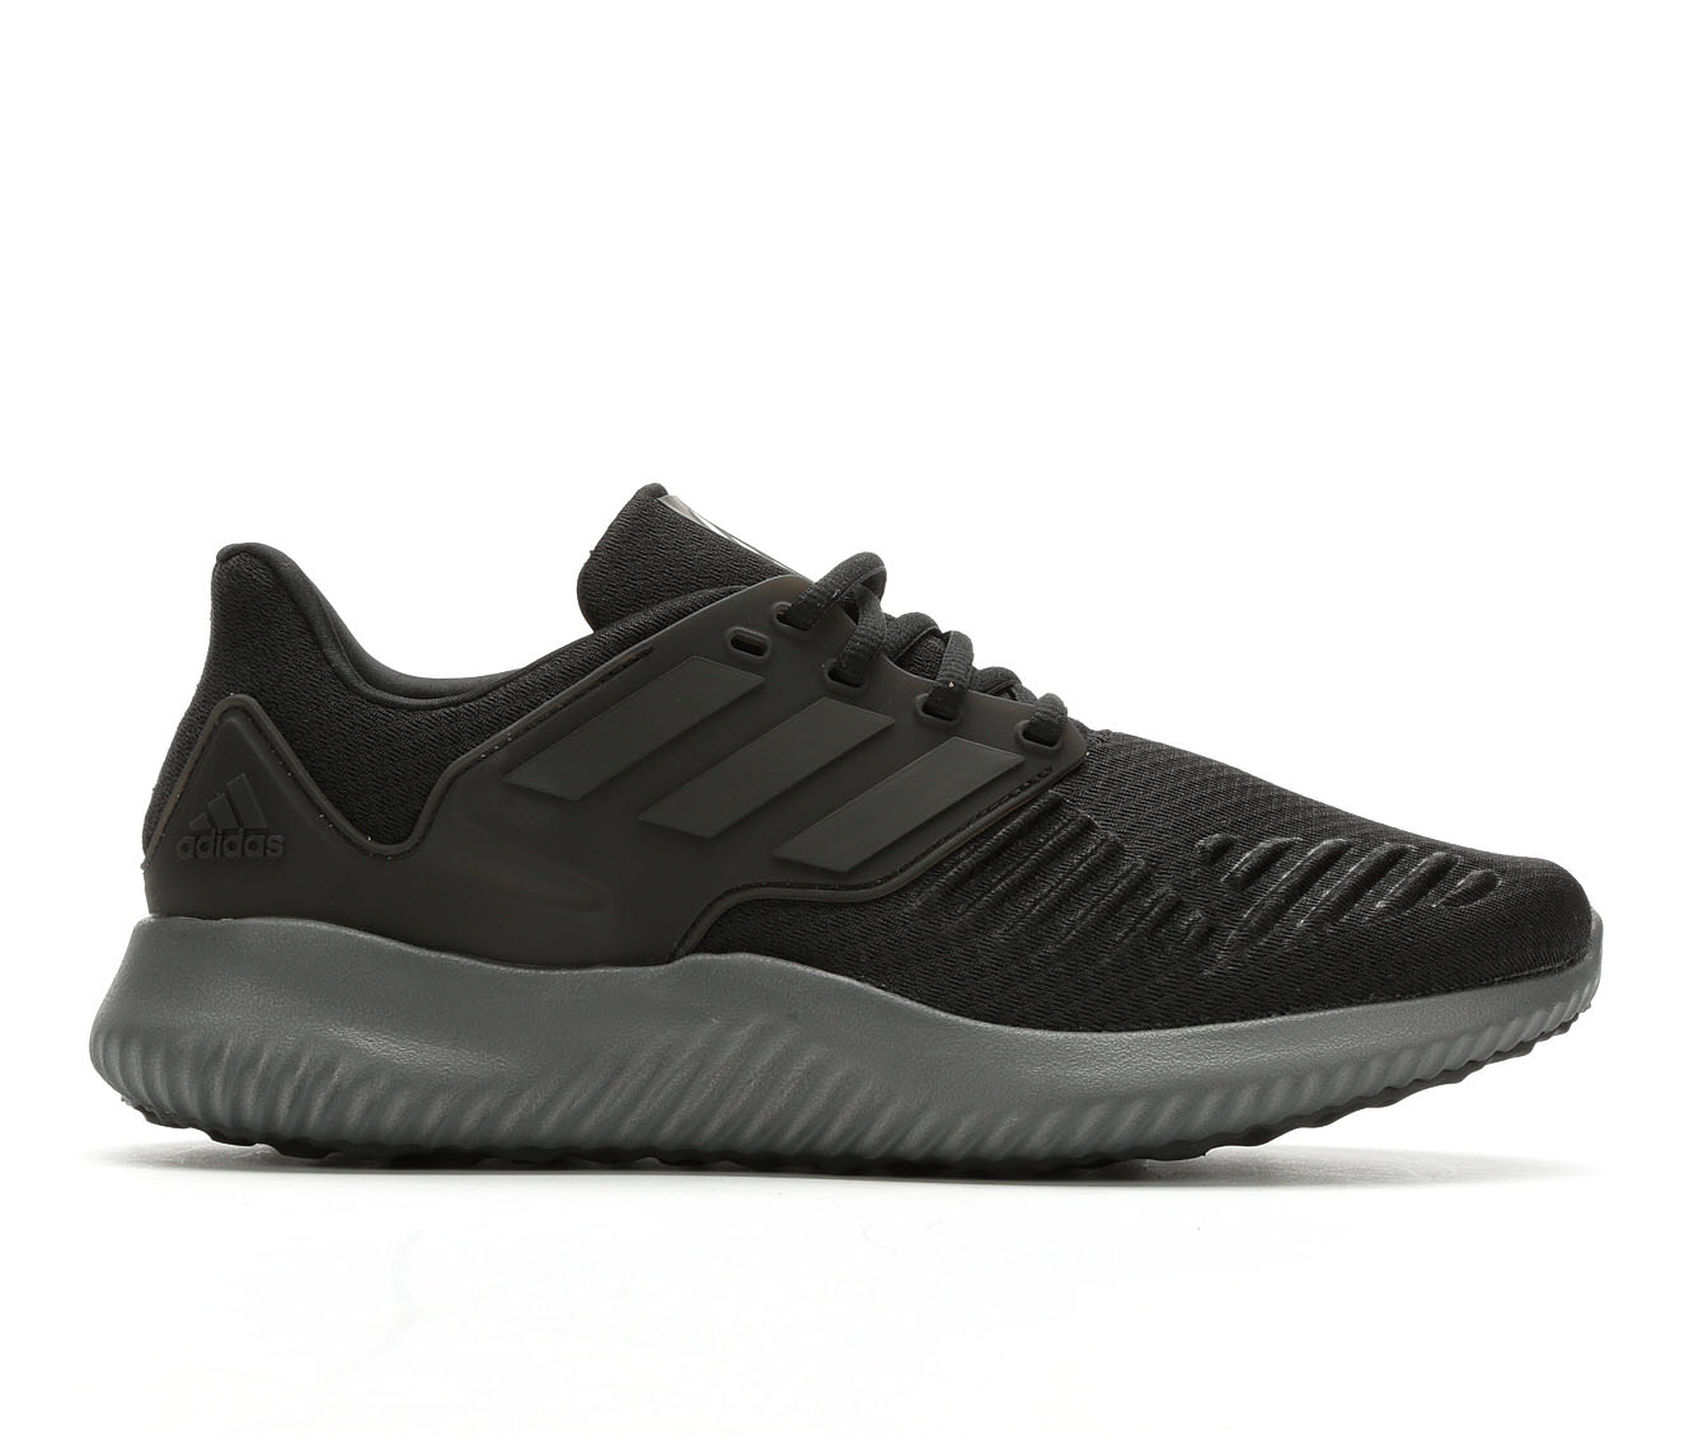 b19dce878 Adidas Mens Alphabounce rc.2 Low Top Lace Up Running Sneaker